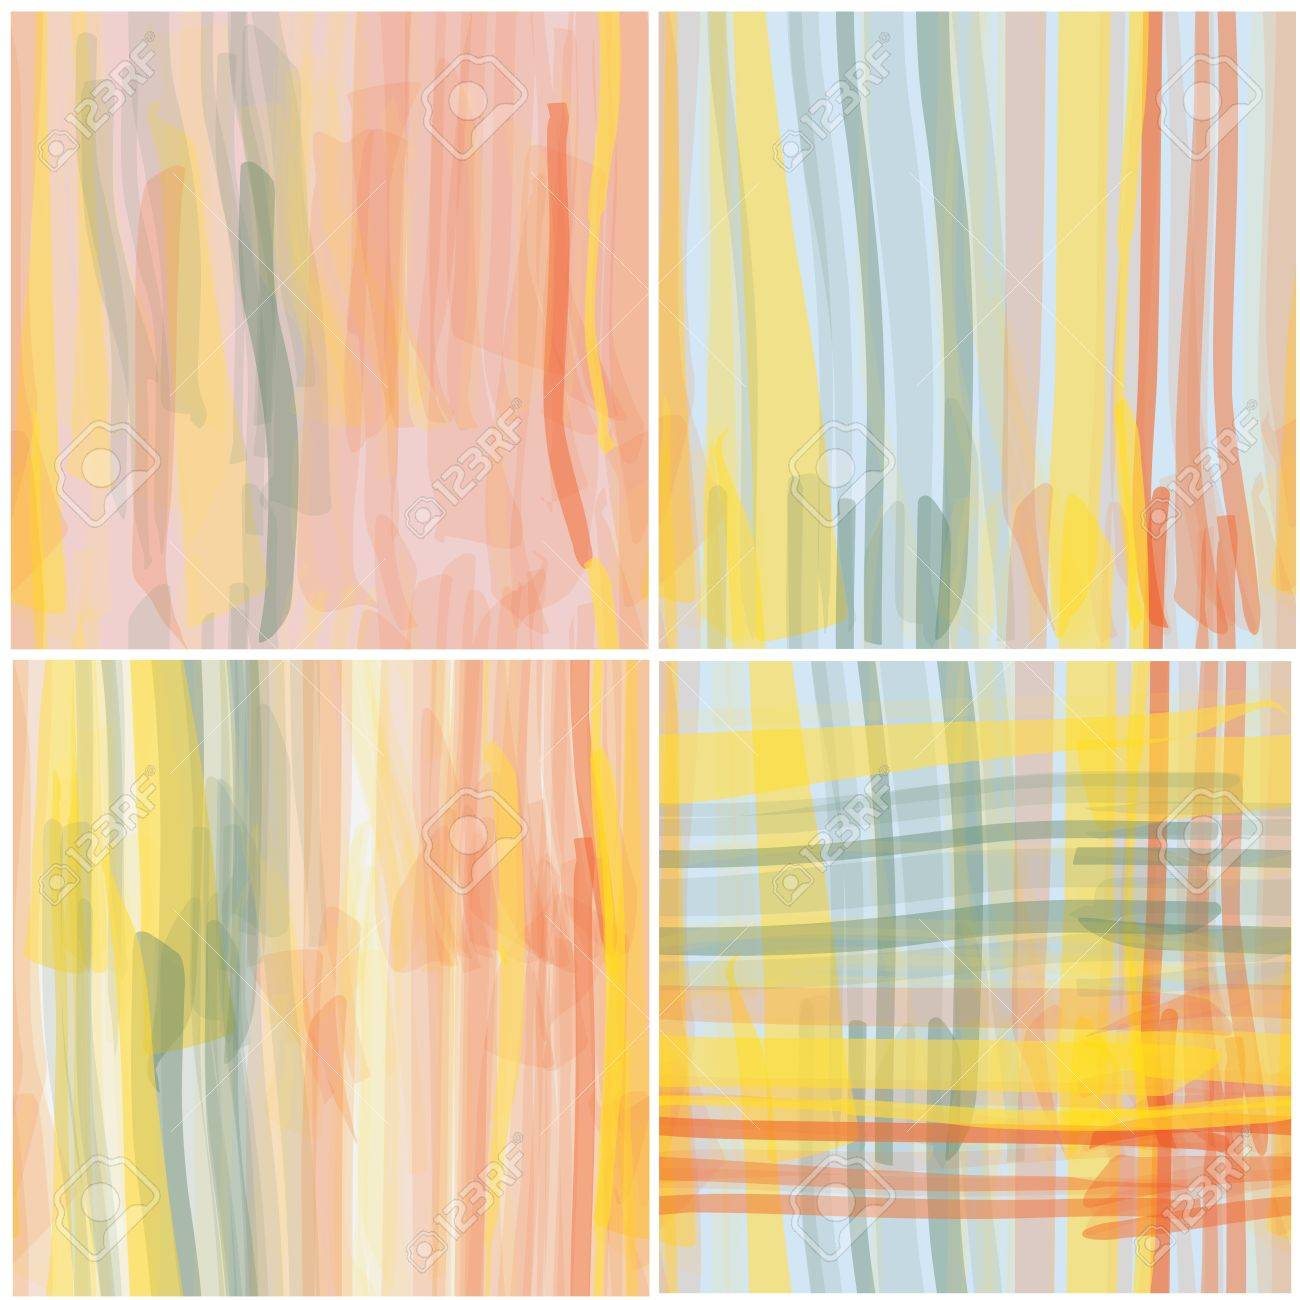 Watercolor grunge striped seamless patterns vector set Stock Vector - 13558556